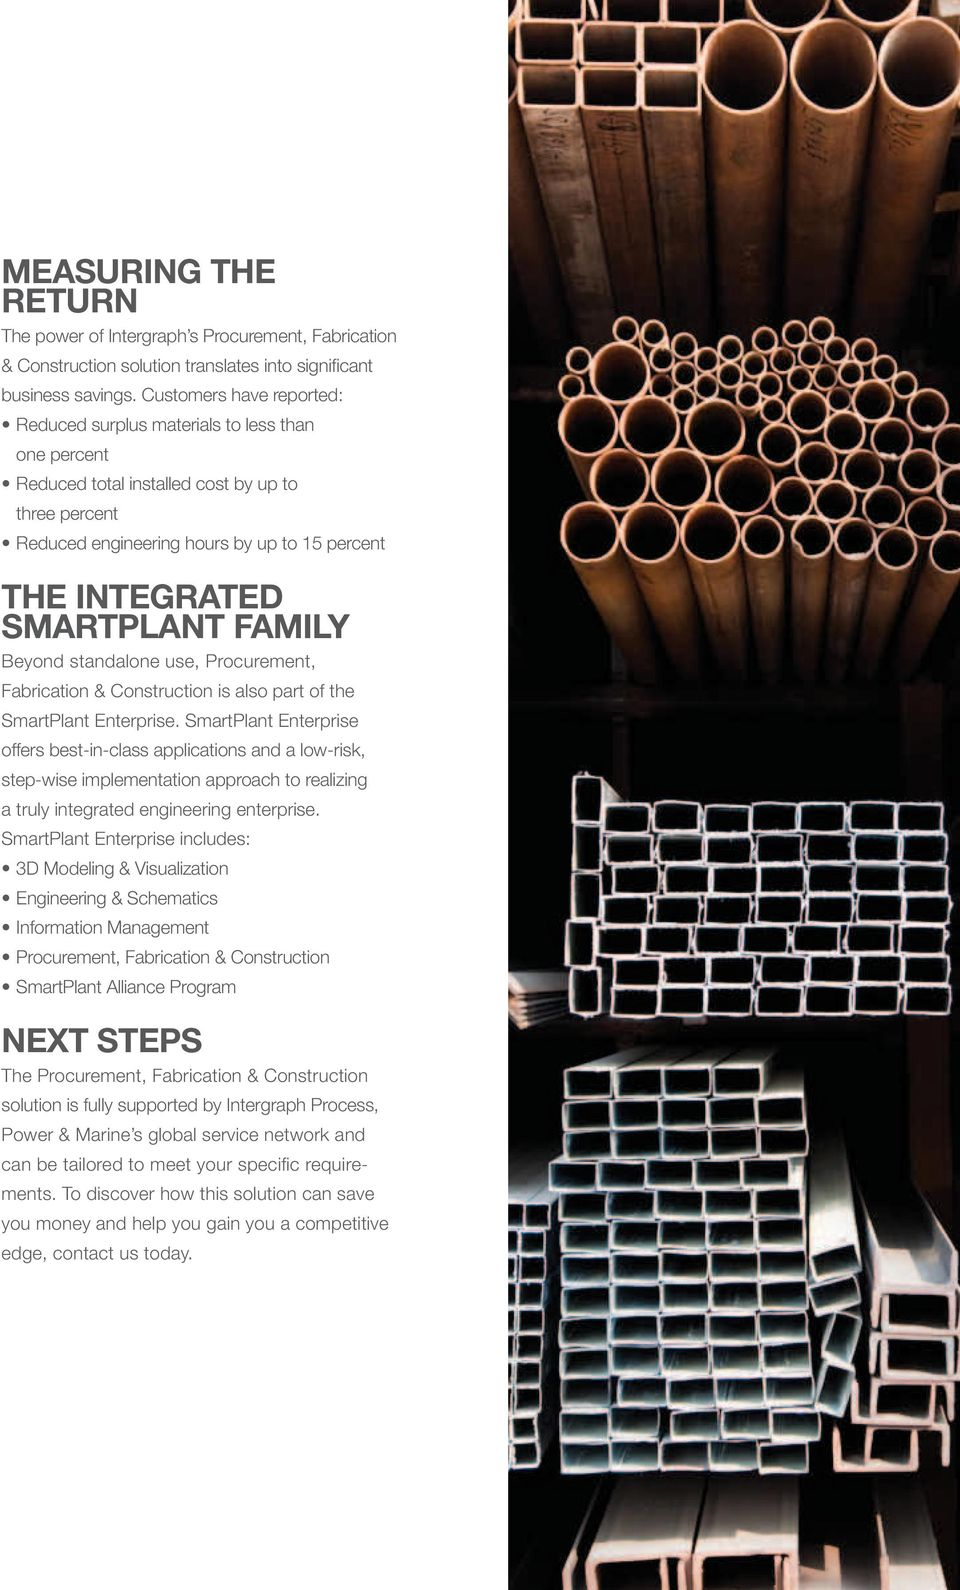 Family Beyond standalone use, Procurement, Fabrication & Construction is also part of the SmartPlant Enterprise.